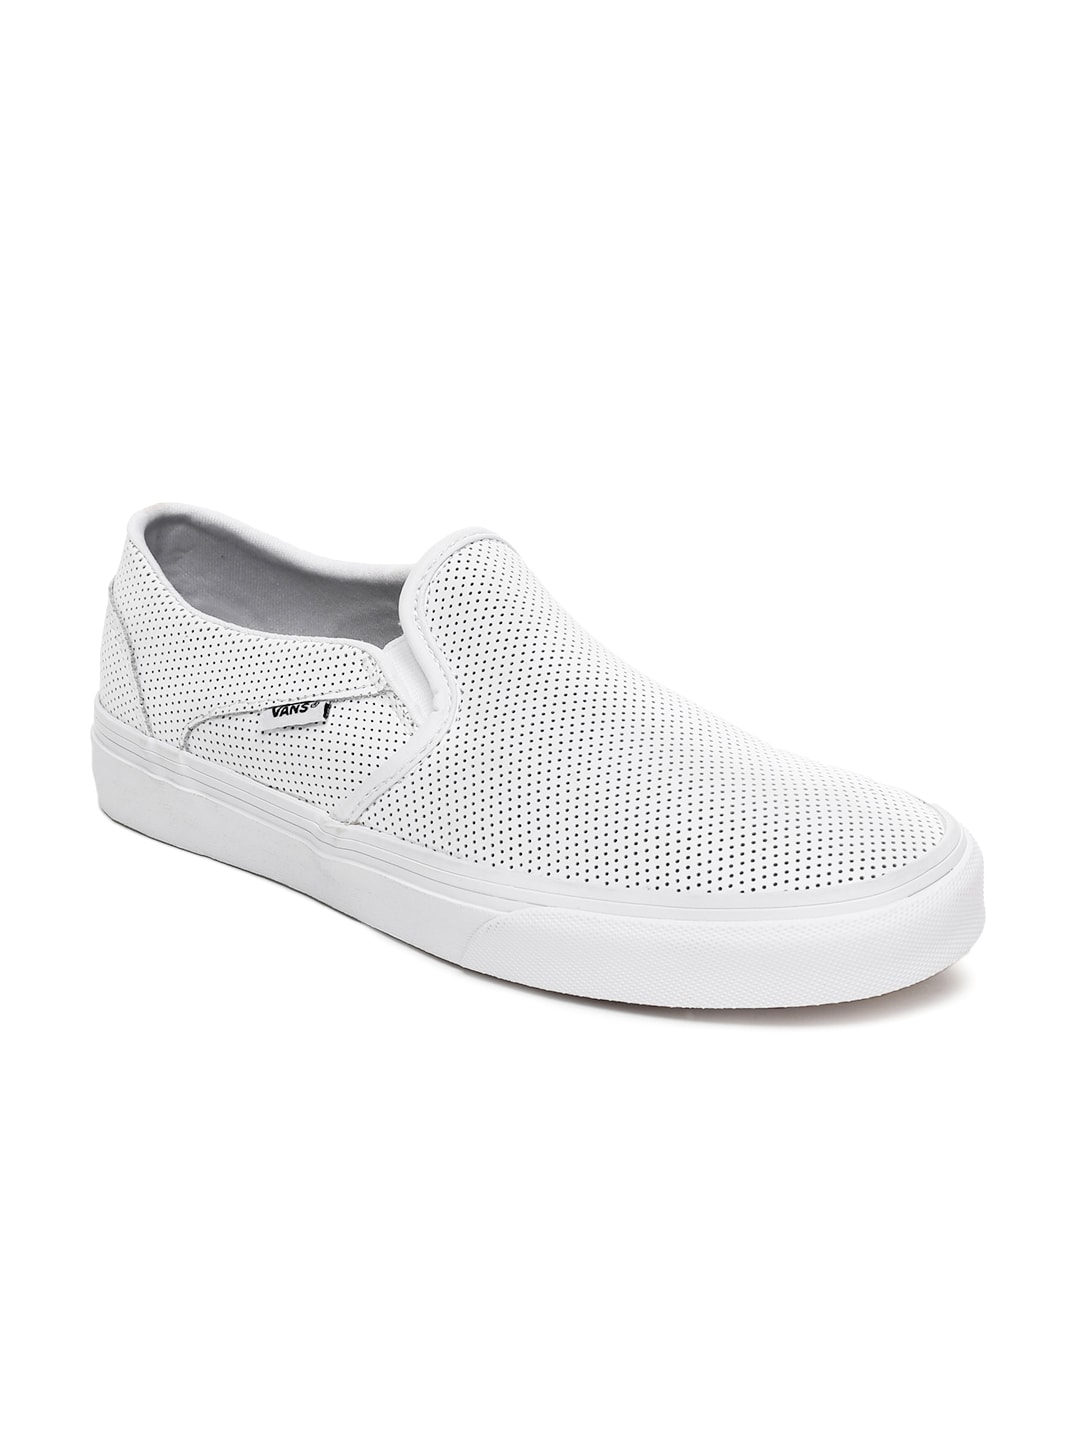 64dcc34250342f Vans Asher White Casual Sneakers for women - Get stylish shoes for ...